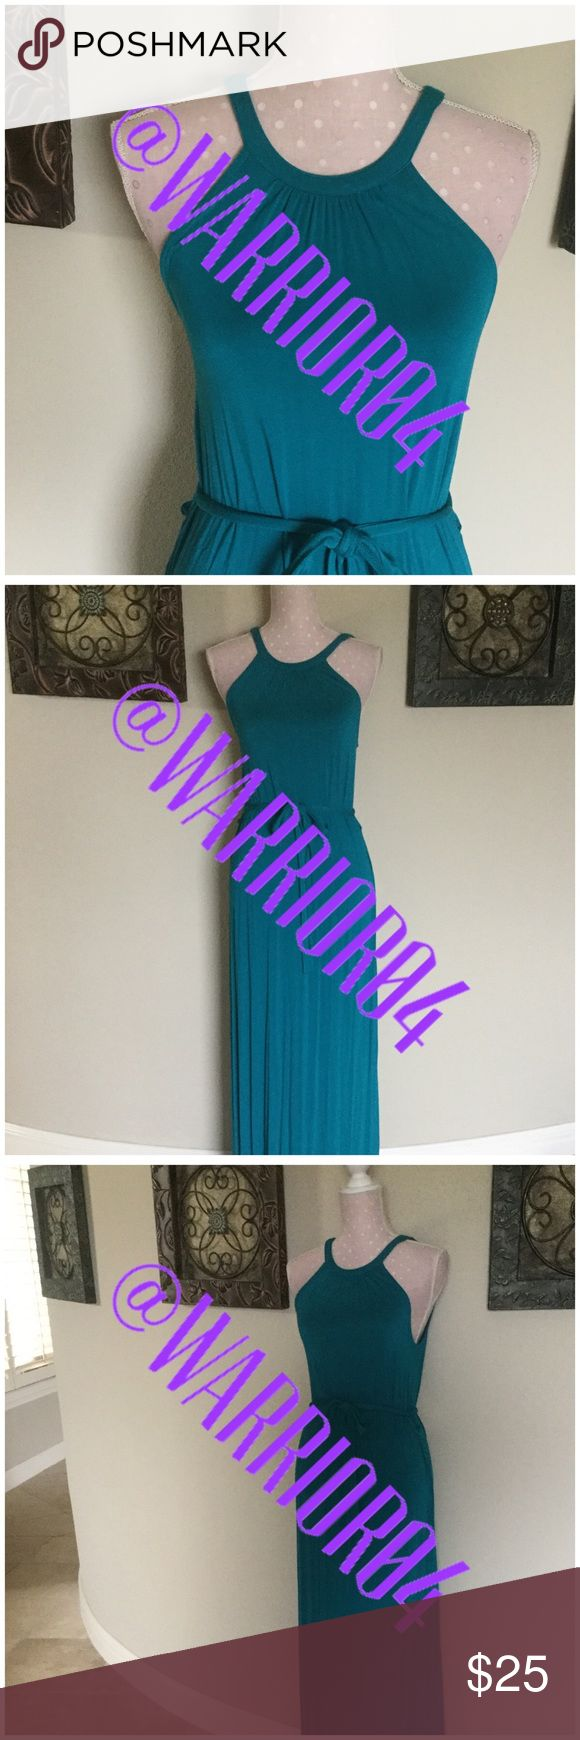 Old Navy  Turquoise Maxi Dress Size SPP Old Navy  Turquoise Maxi Dress Size SPP Old Navy Dresses Maxi